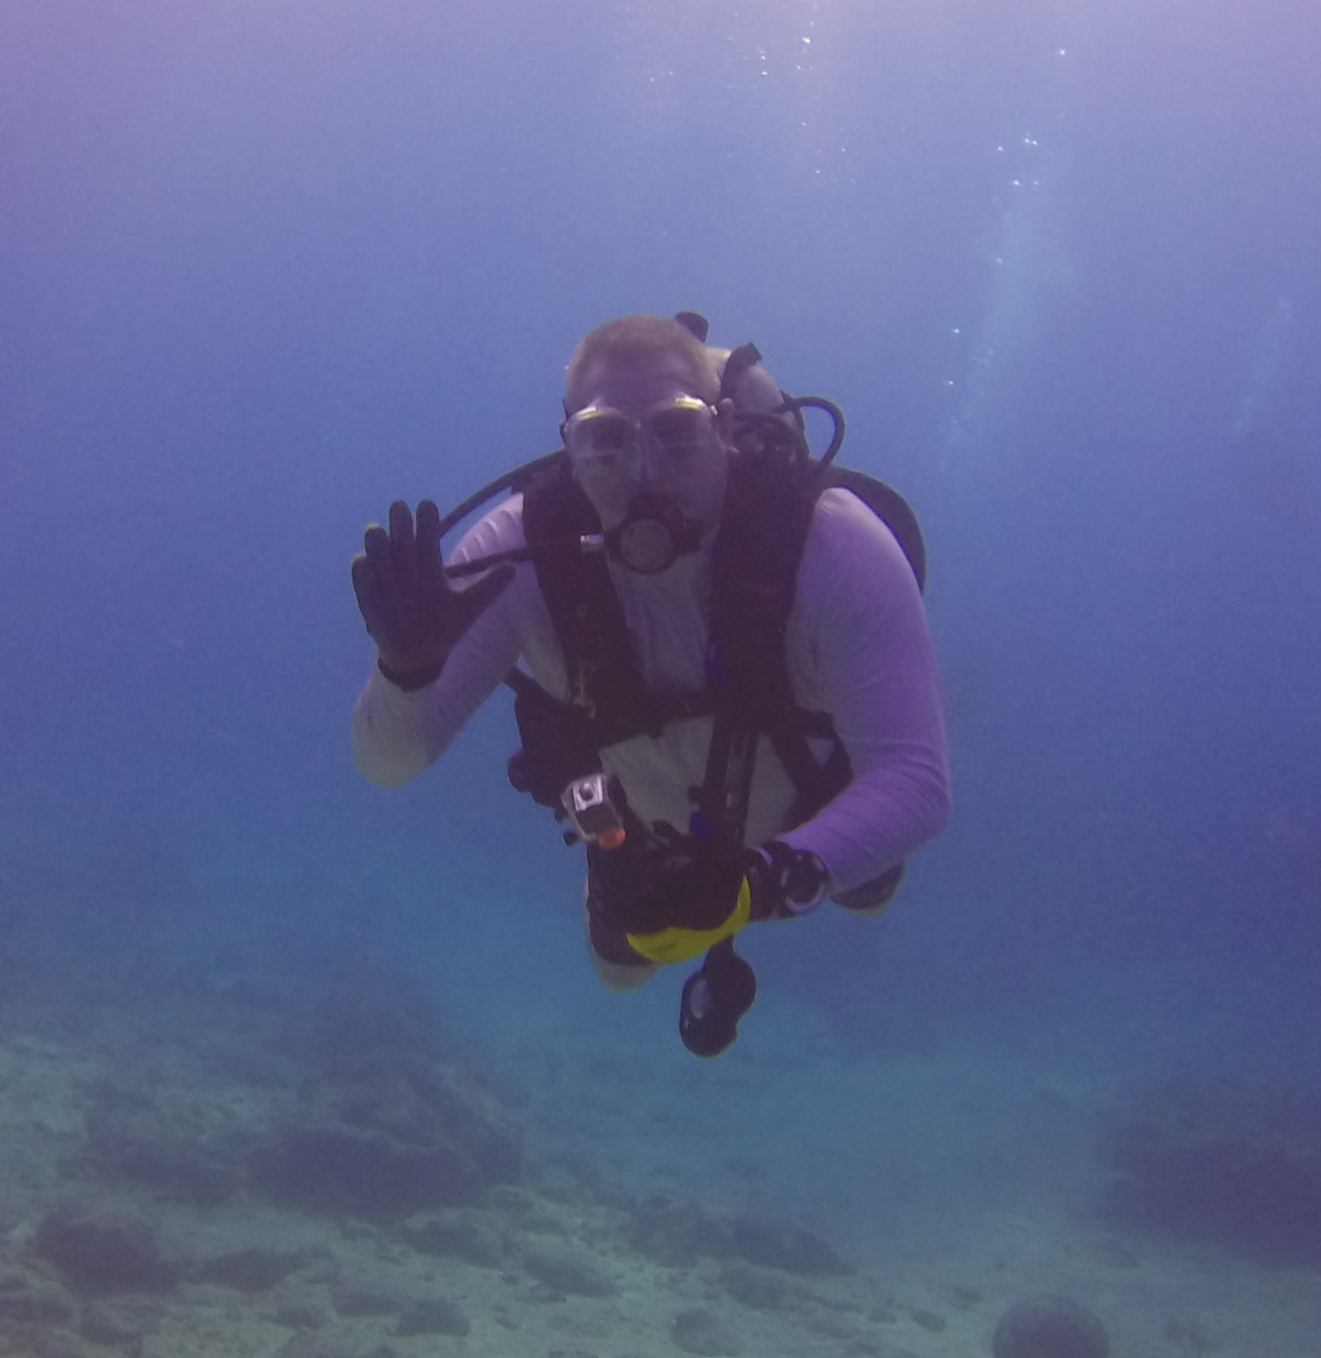 Jess Clifton Instructor - Jess Clifton began diving in 2015 and worked his way up to Master Scuba Diver, before transitioning to the professional side of SDI to become an Instructor. A licensed attorney, Jess can be found working in federal and state courts when he is not diving.